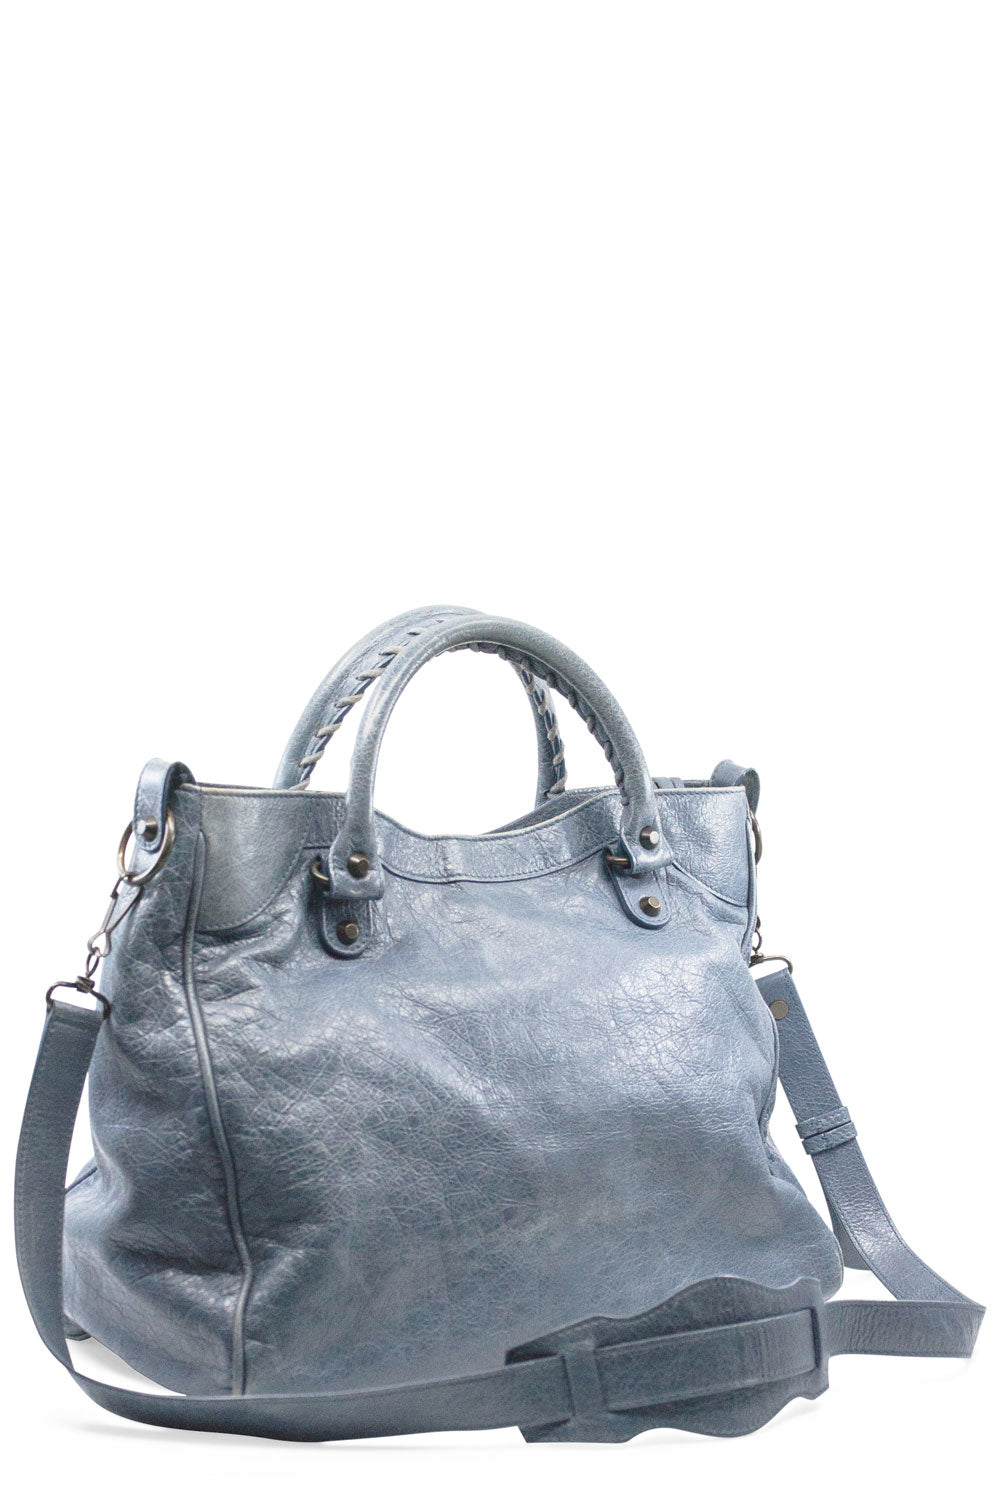 BALENCIAGA City Bag Blue